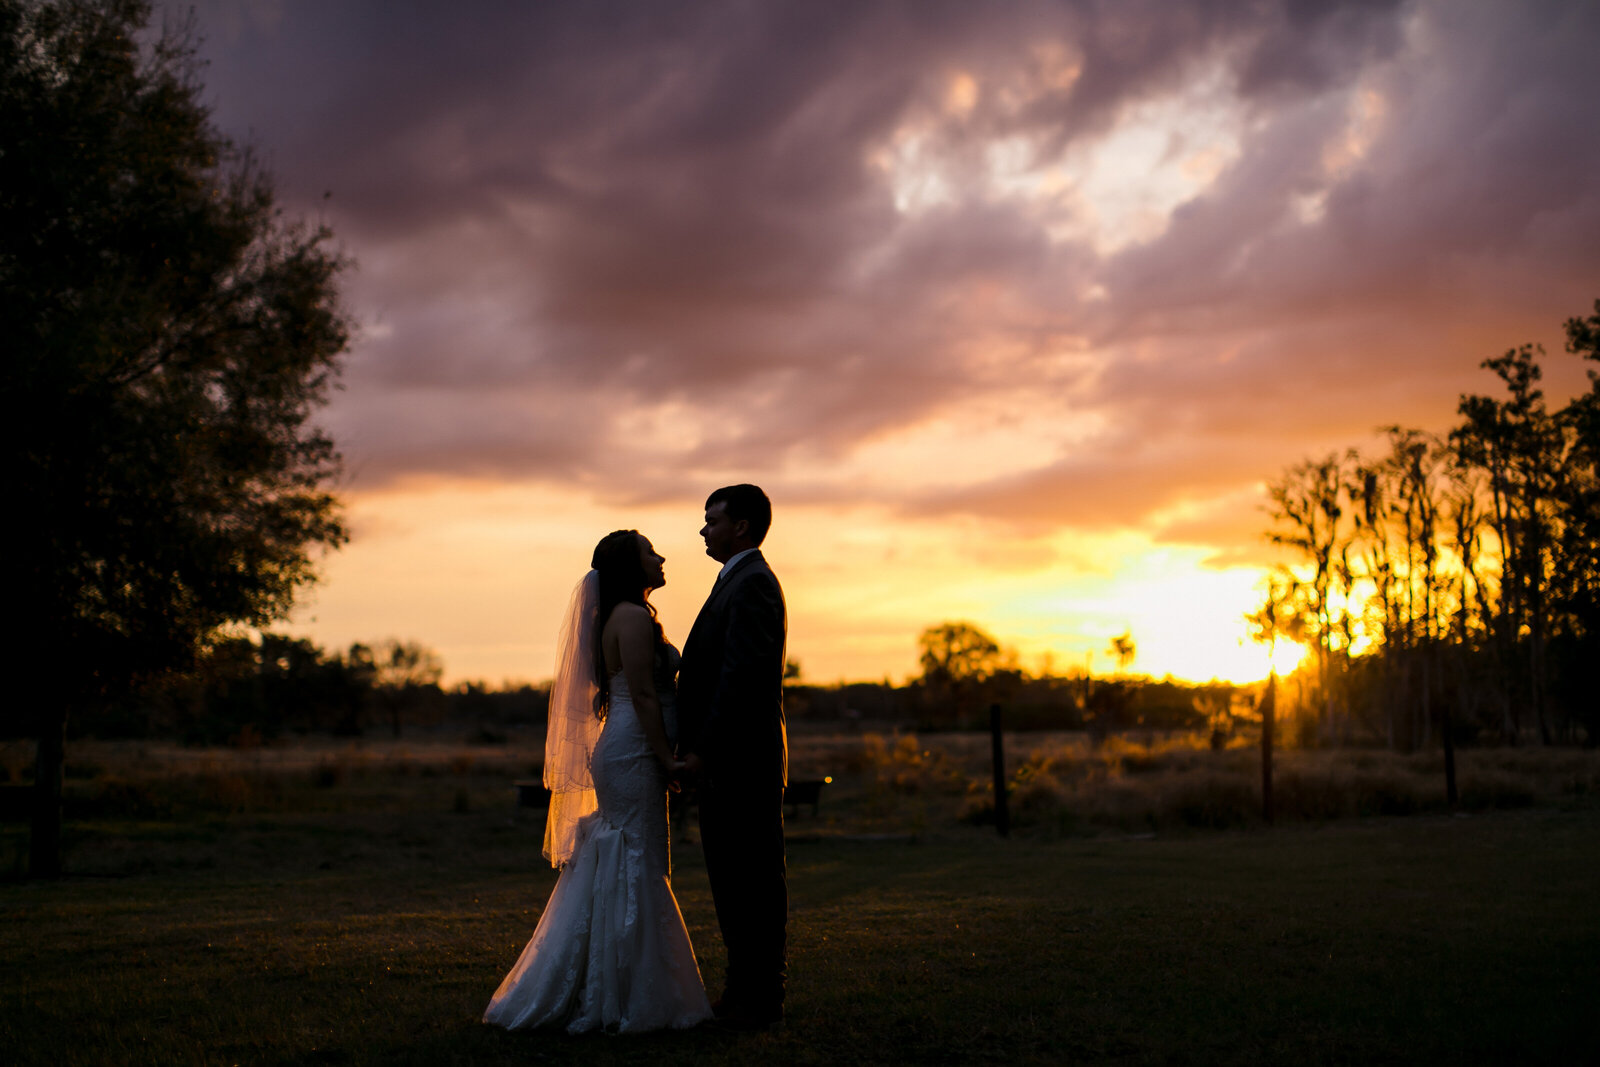 zolfo springs wedding ciara and tyler - brandi watford photography 407